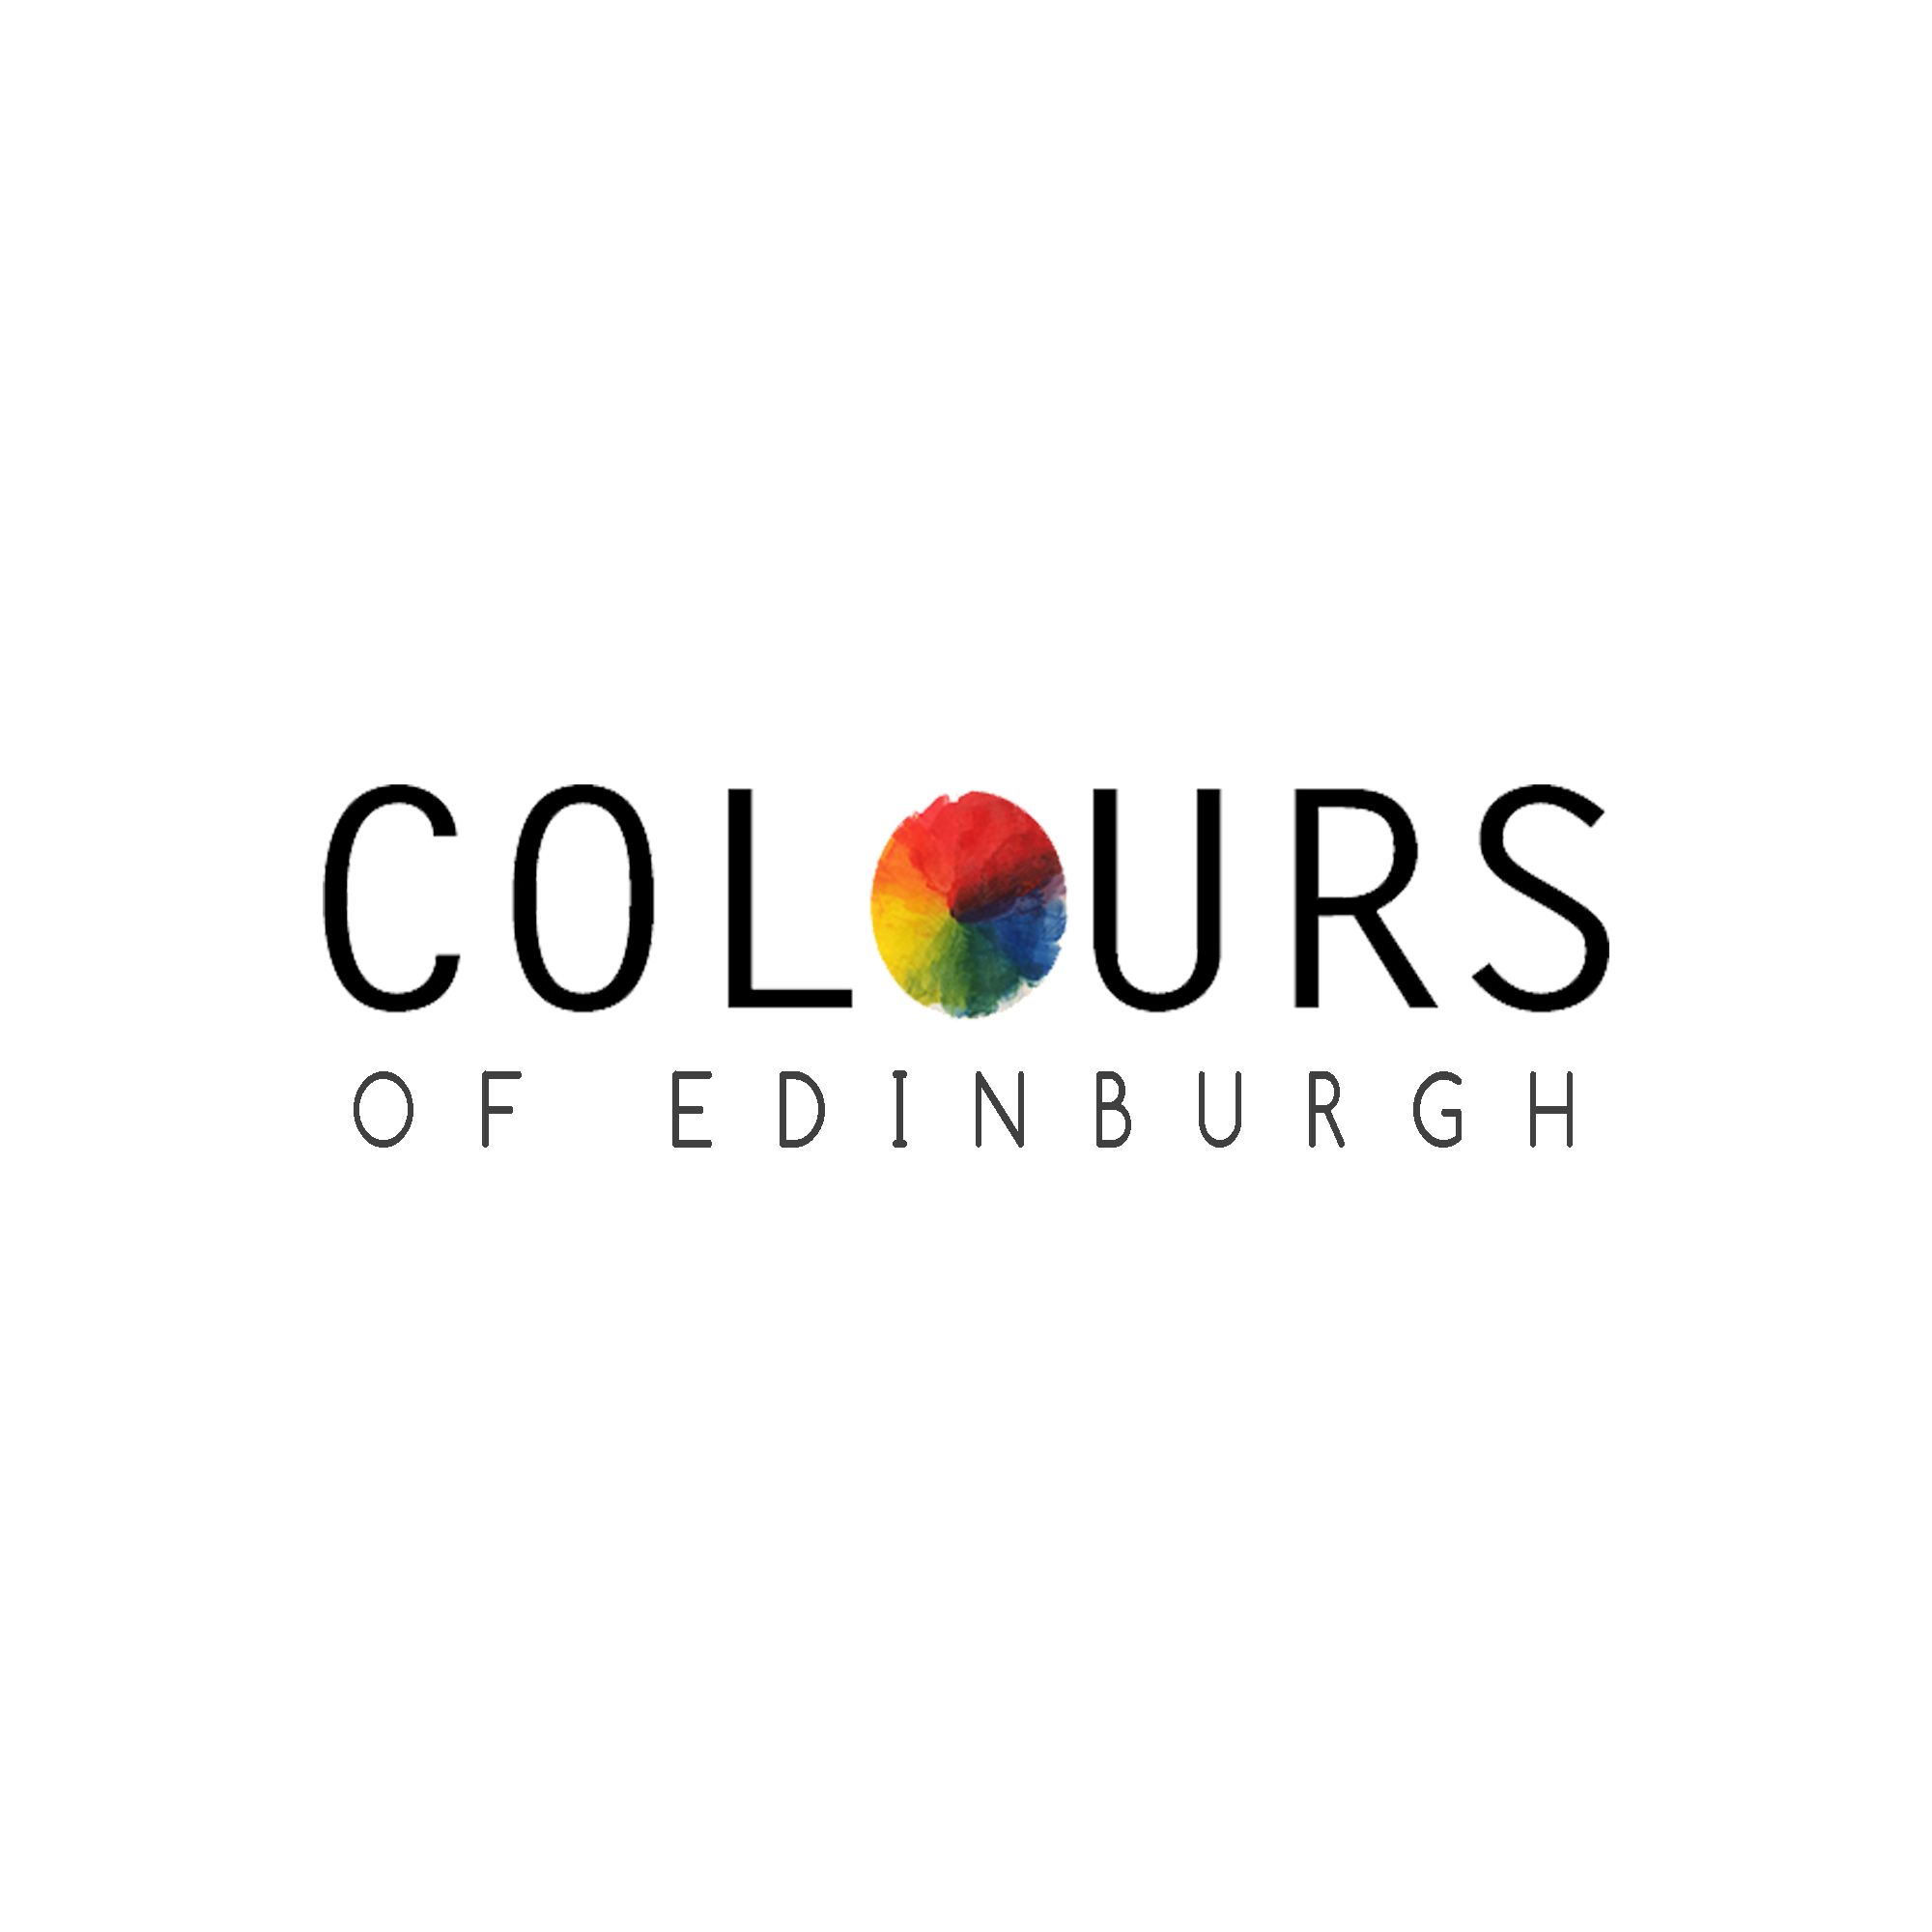 COLOURS of Edinburgh